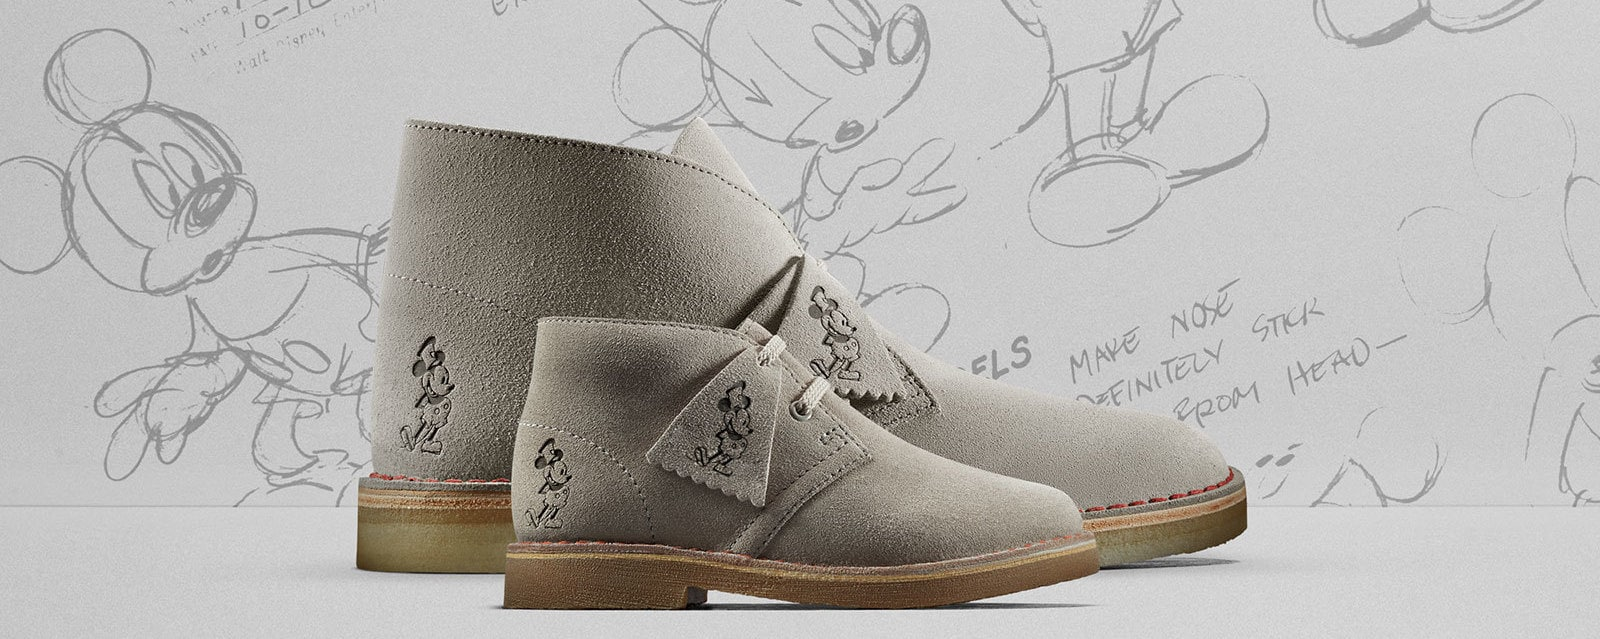 Clarks Mickey Mouse themed limited-edition Desert Boot